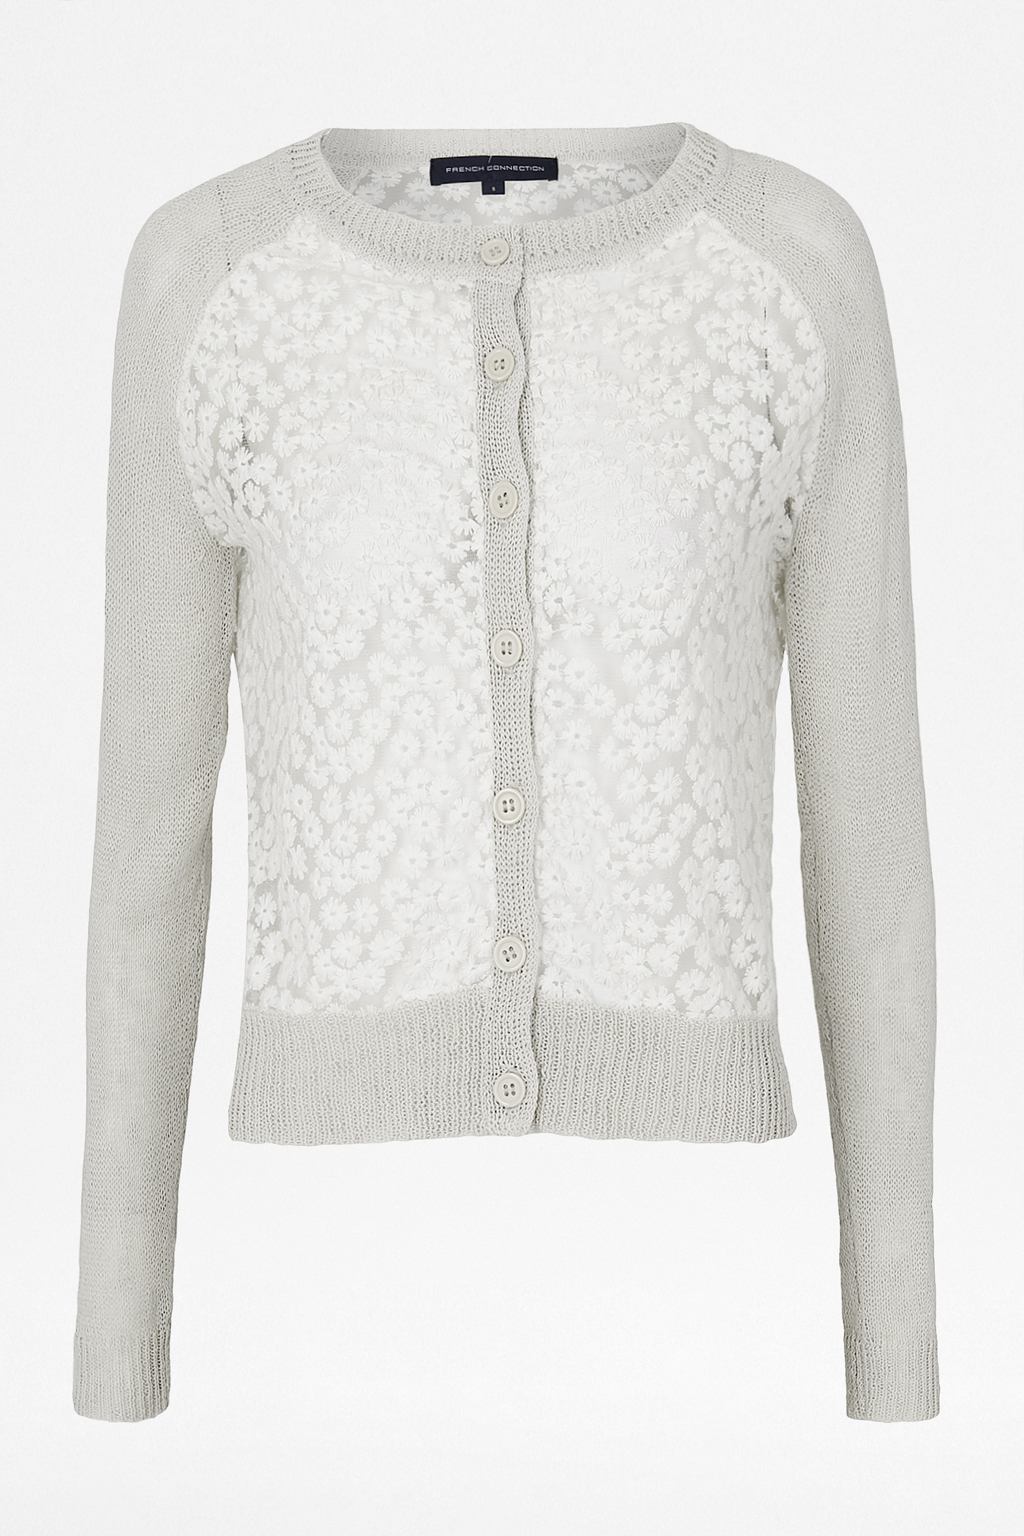 French connection Laila Lace Cropped Cardigan in Natural | Lyst